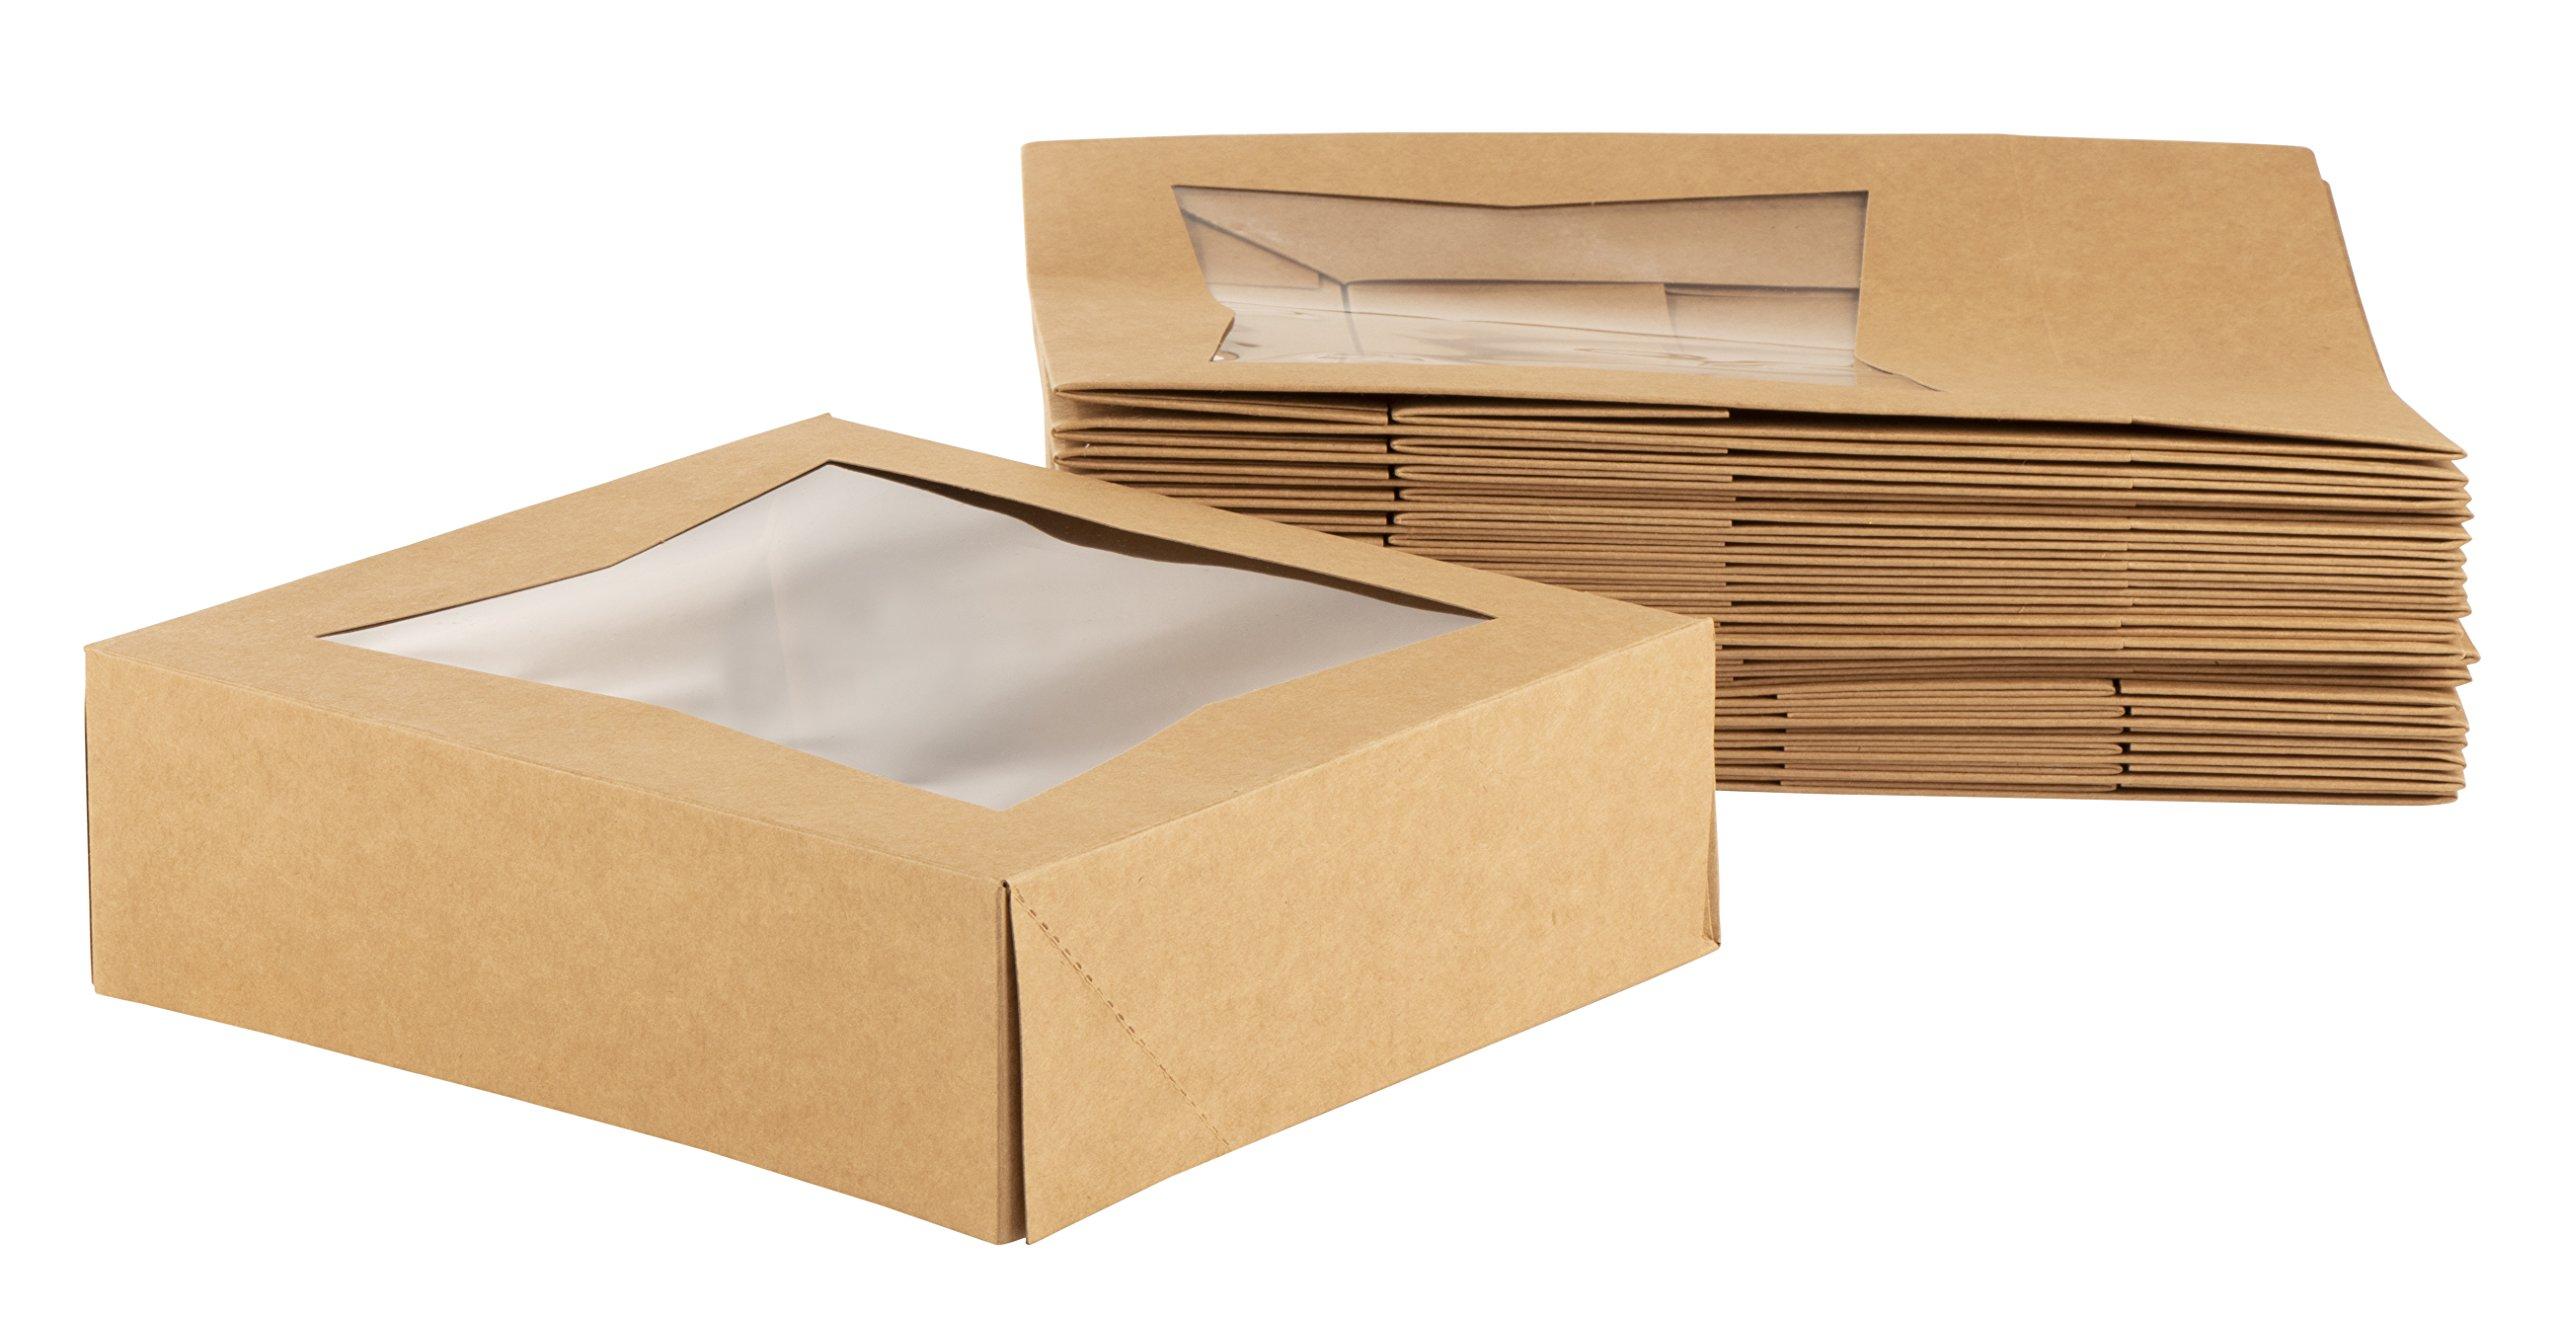 Kraft Paperboard Popup Window Box - Pack of 20 Brown Kraft Paperboard Pop-Up Window Box, Pastry & Cake Bakery Boxes with Plastic Window, 8 x 8 x 2.5 Inches